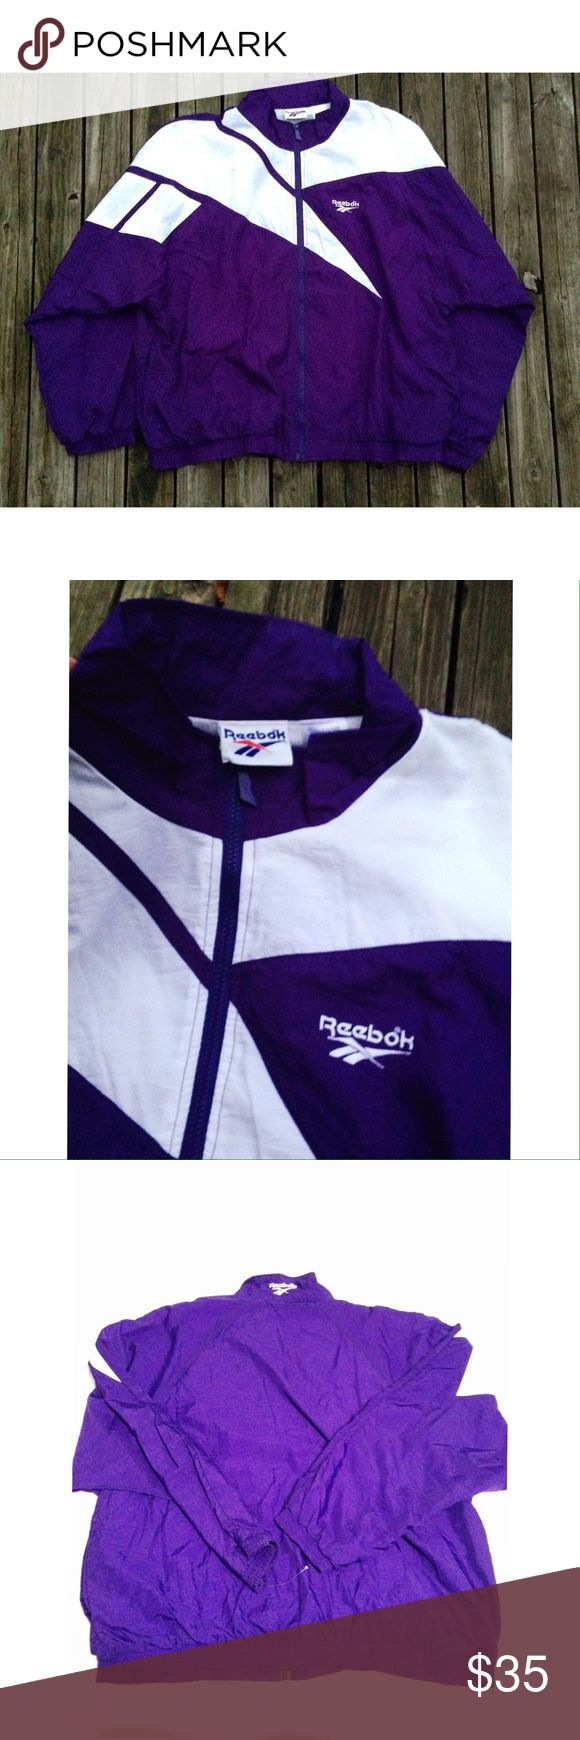 Vintage Reebok windbreaker Woman's size XXL or fits a men's size XL. New windbreaker without the tags. Rare vintage windbreaker in excellent condition. Purple with white design. Nice classic windbreaker. Vintage Reebok. Retro Reebok Jackets & Coats